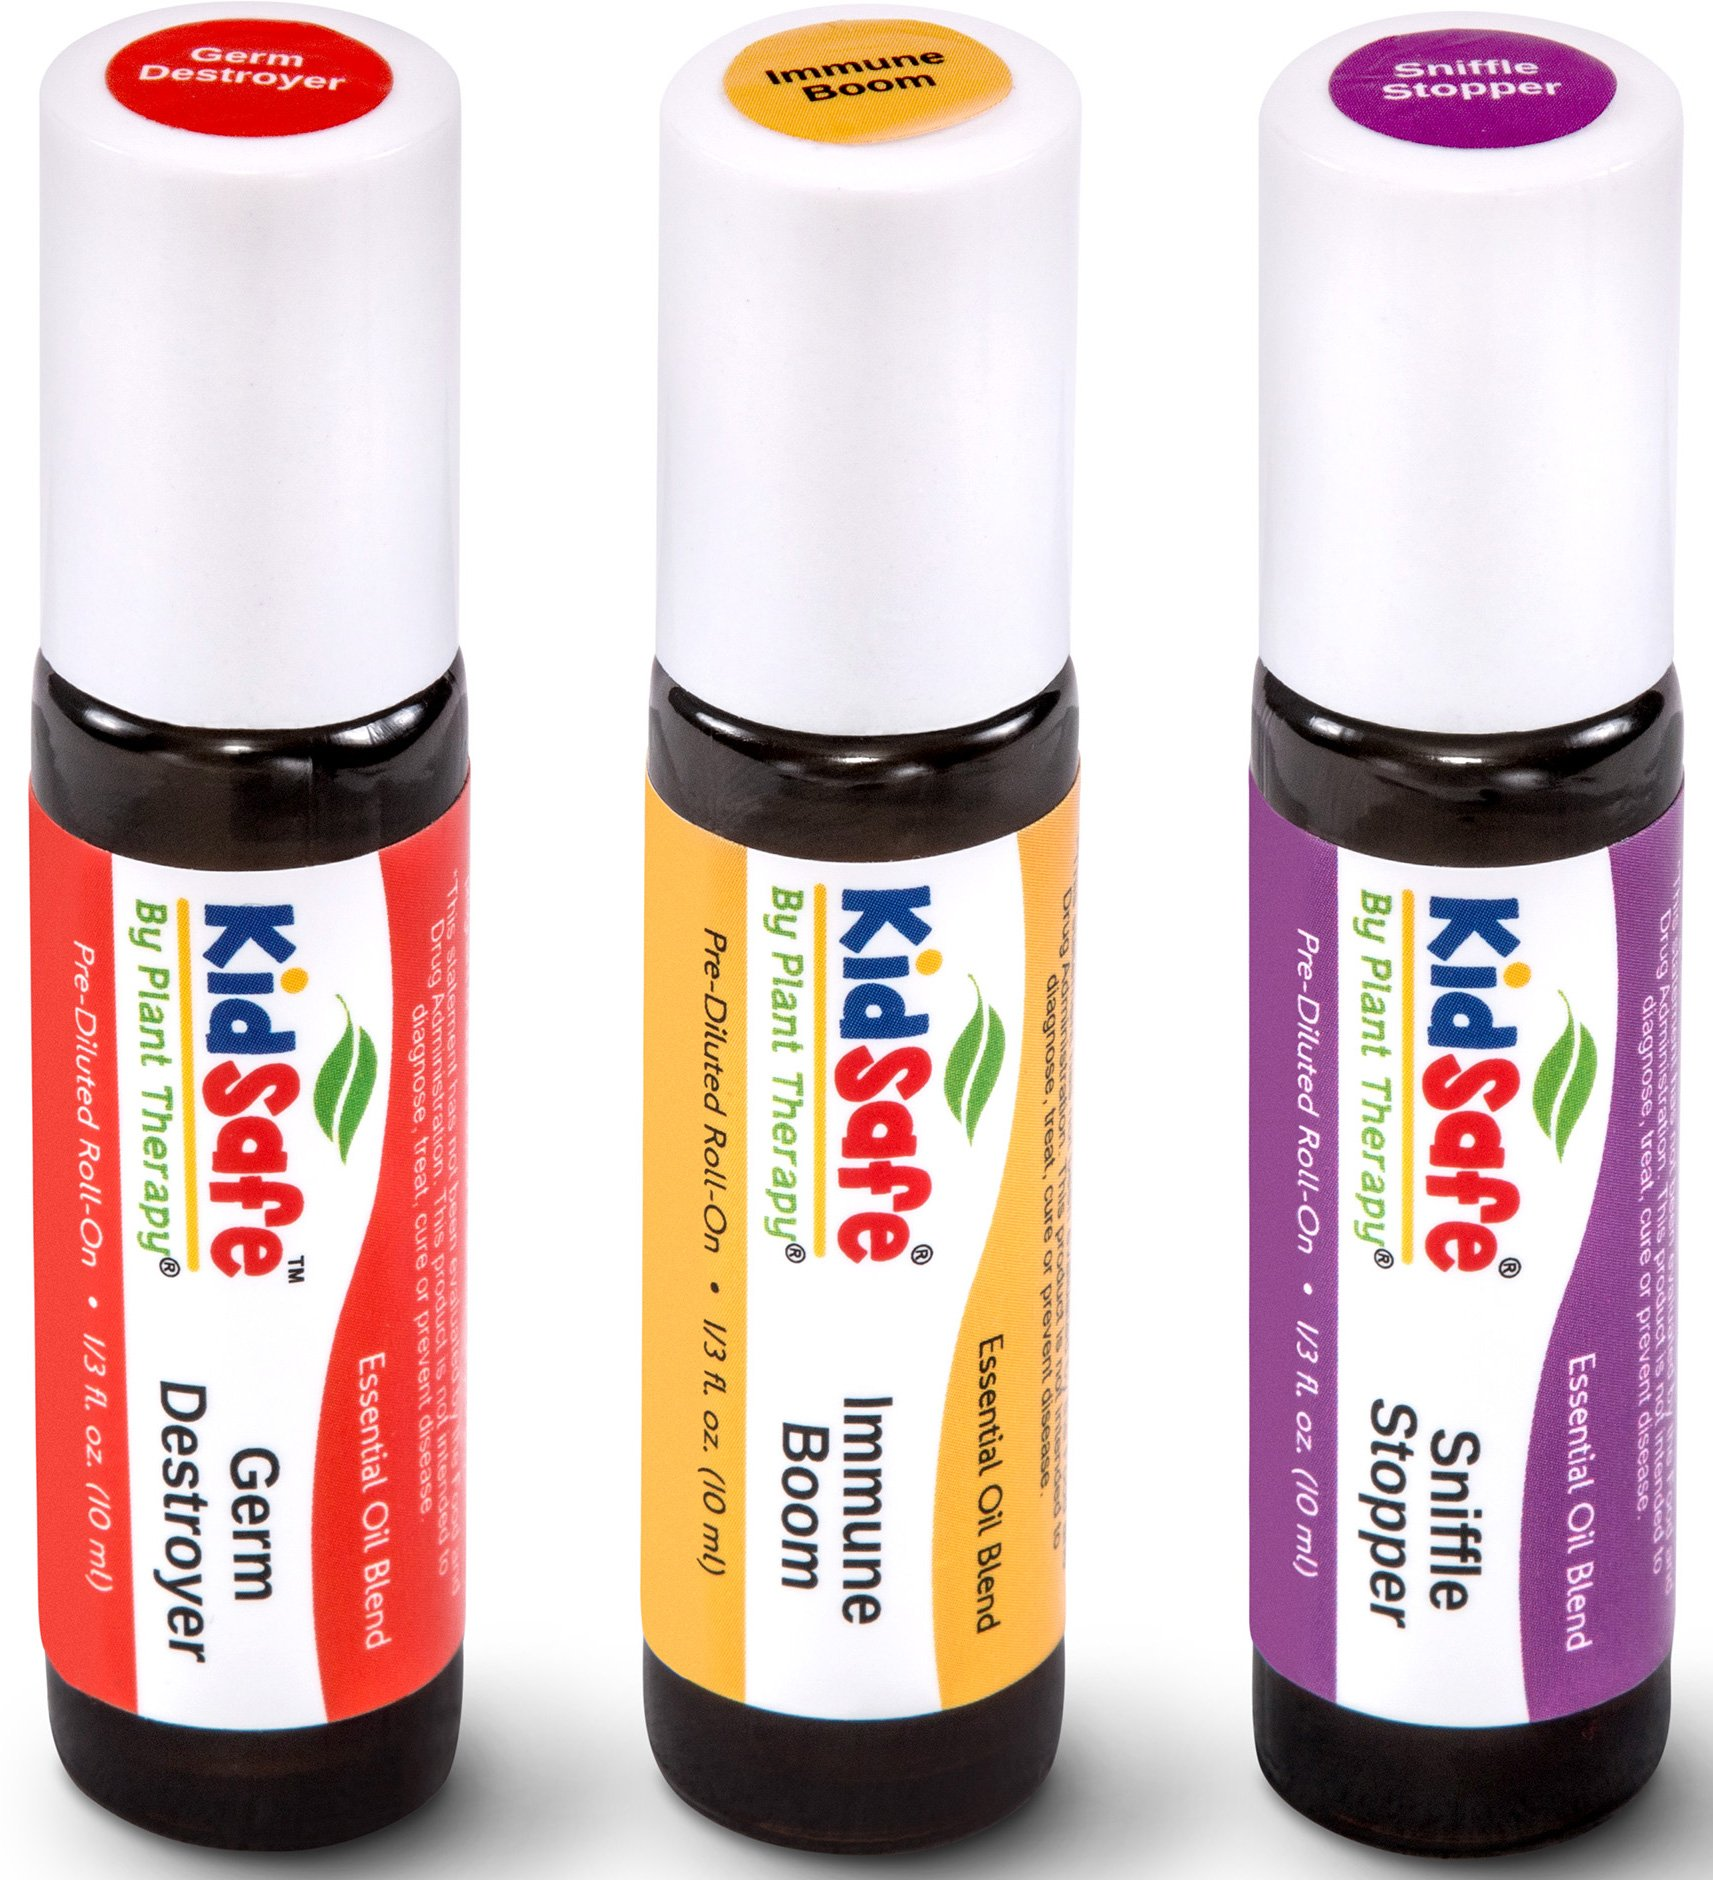 Plant Therapy KidSafe Wellness Sampler Set 100% Pure (Roll-Ons) by Plant Therapy